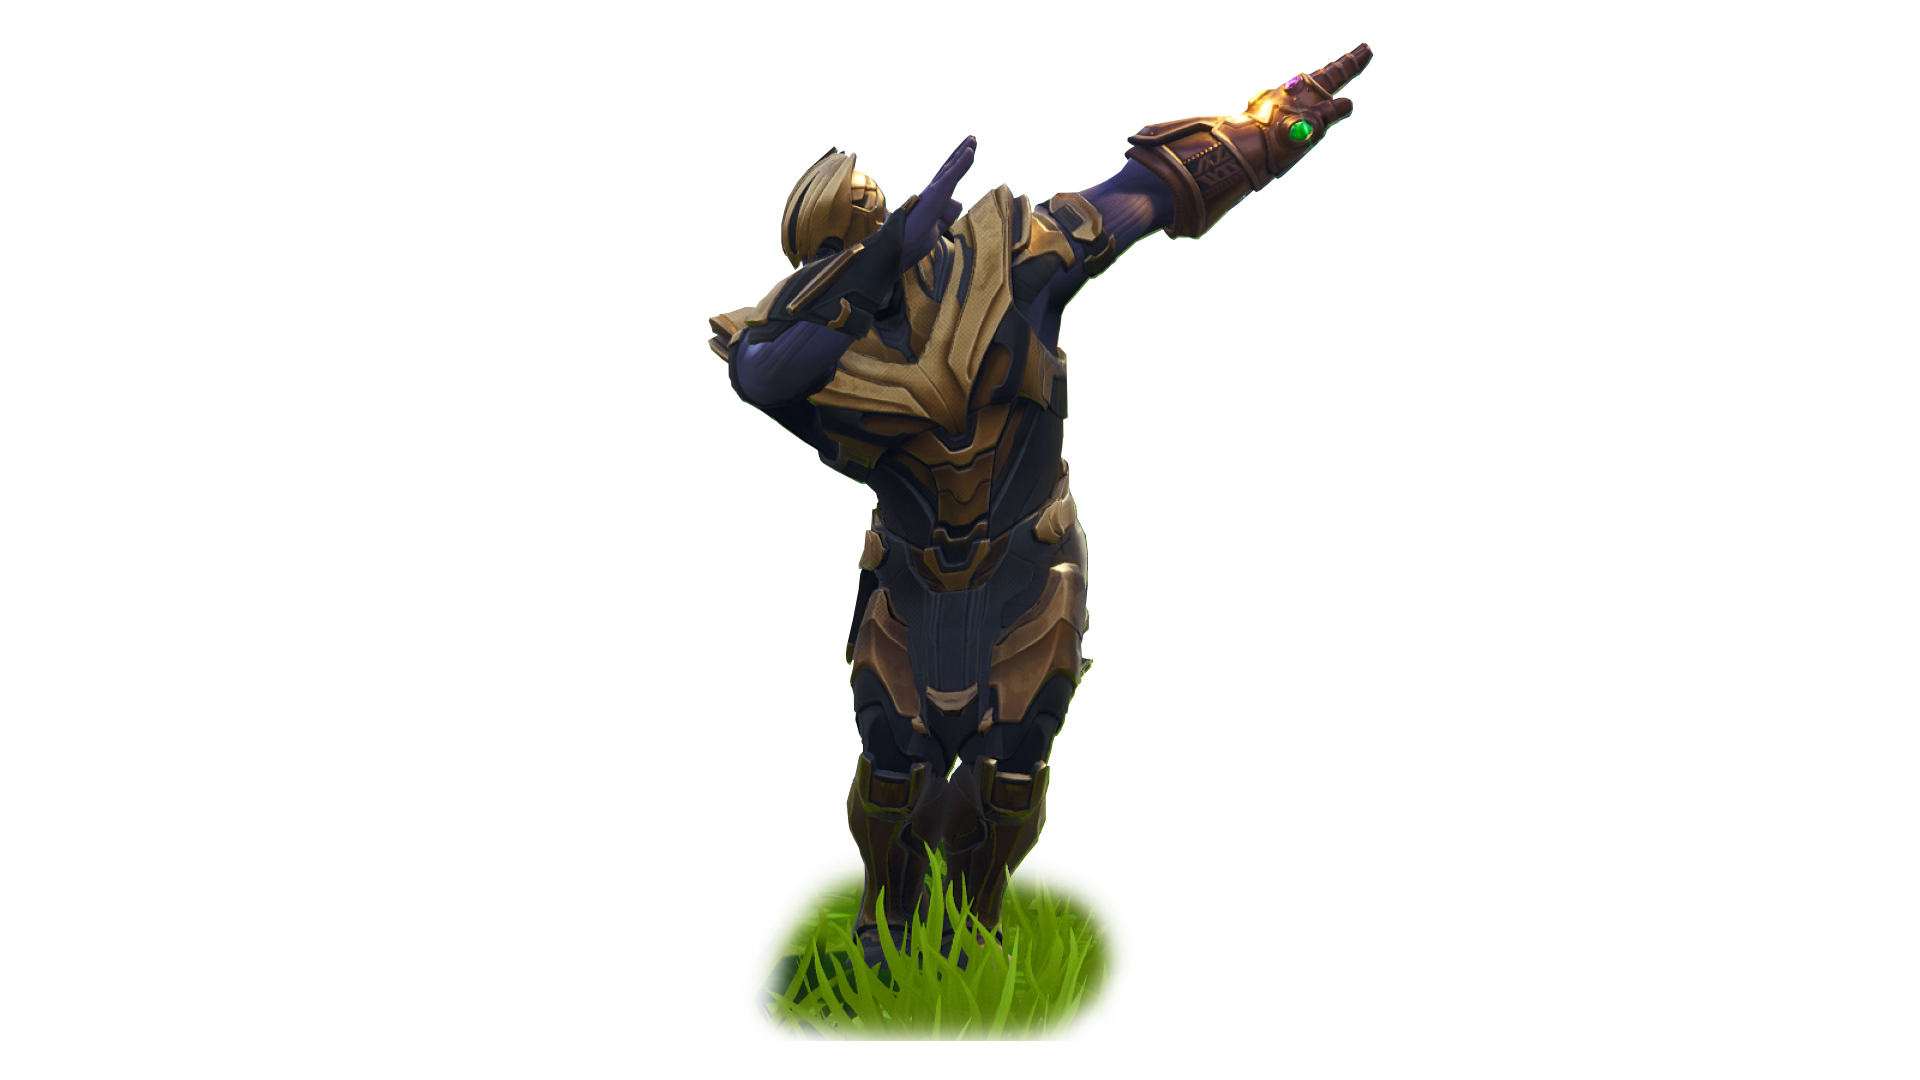 Thanos clipart transparent. Fortnite dab png image